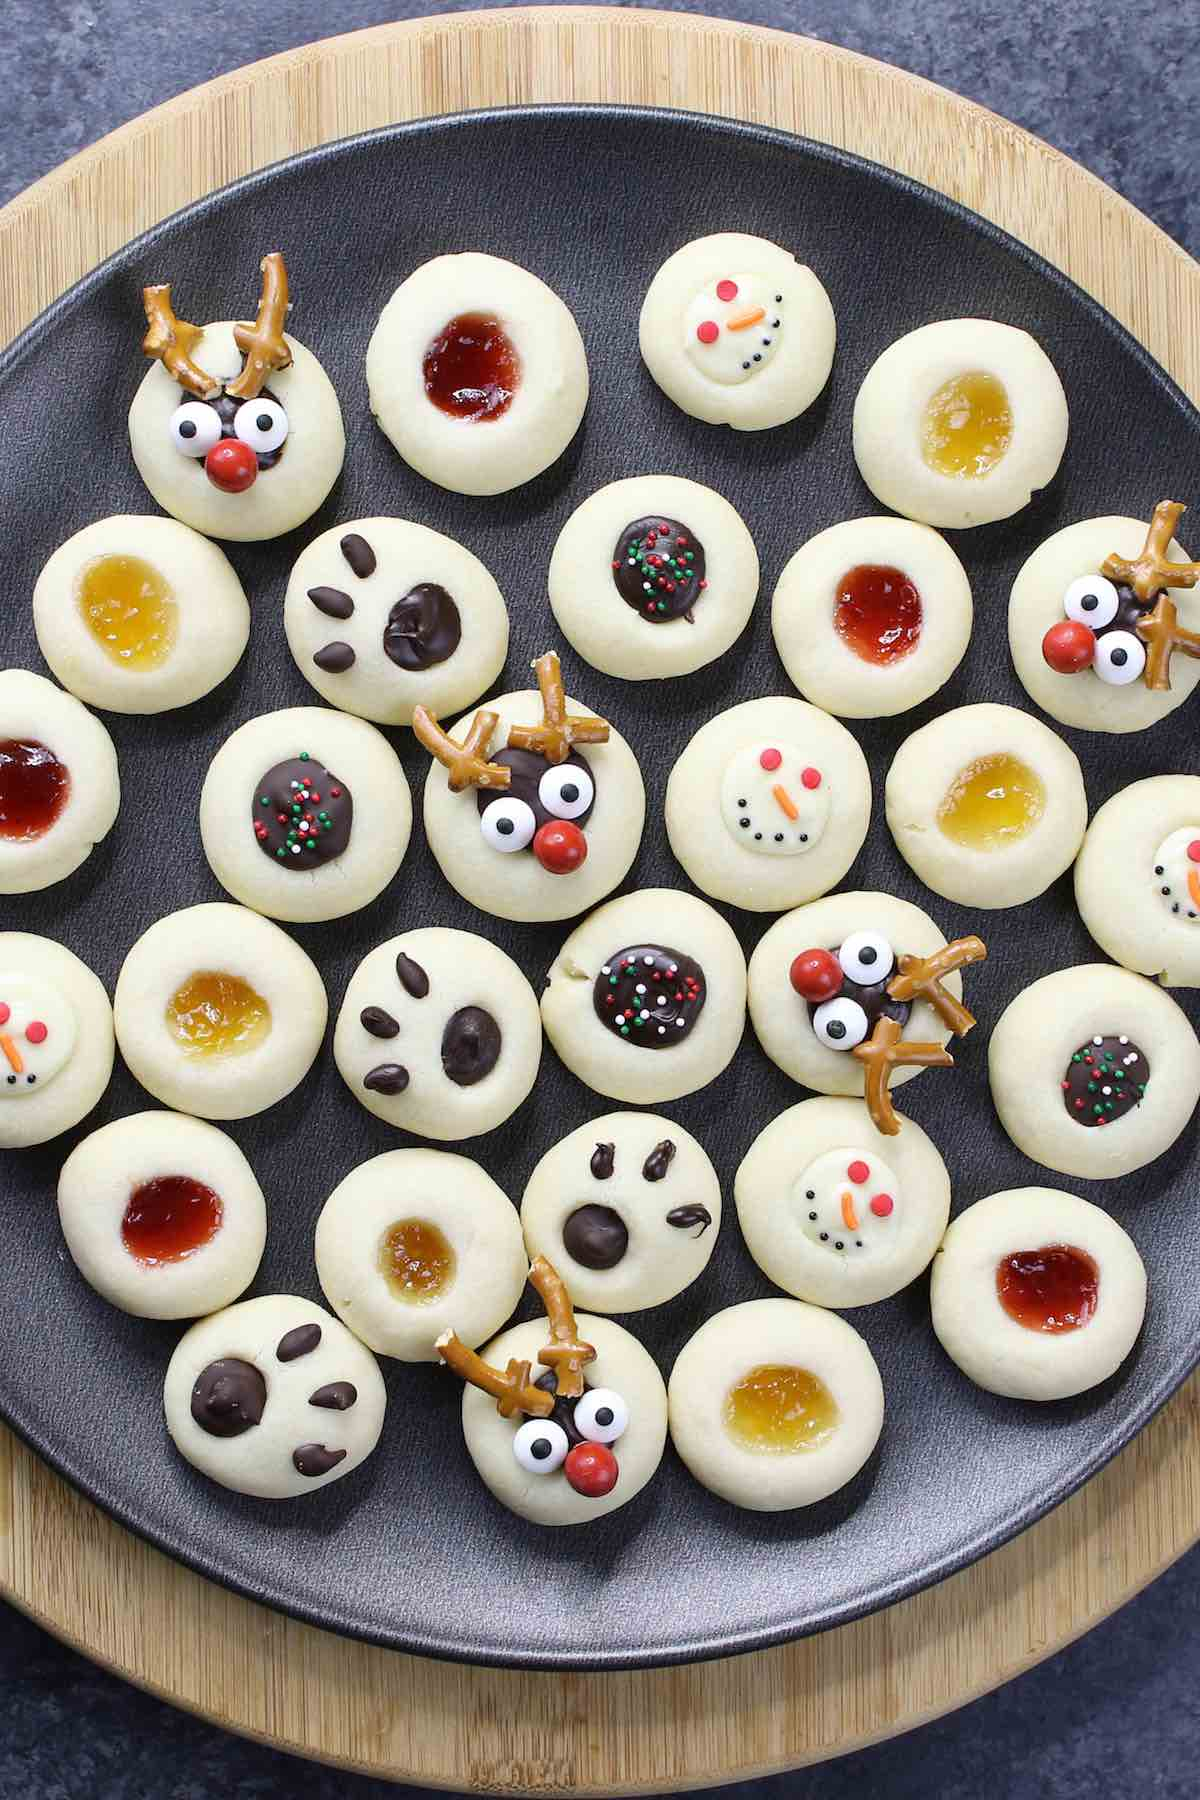 Mixture of jam thumbprint cookies and Christmas chocolate thumbprint cookies on a dark plate.